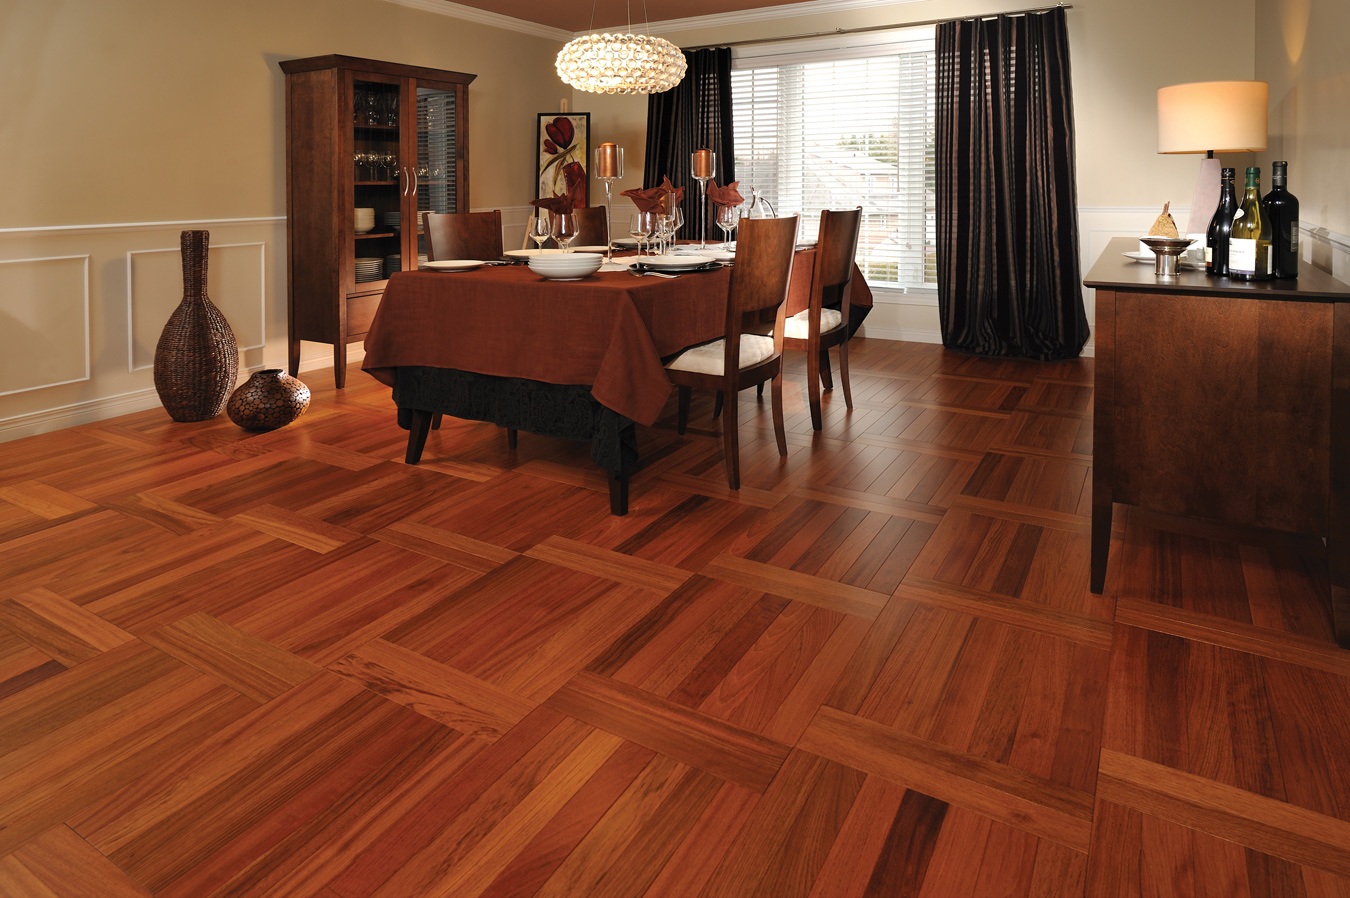 15 popular ideas and designs for hardwood floors qnud for Wood flooring choices